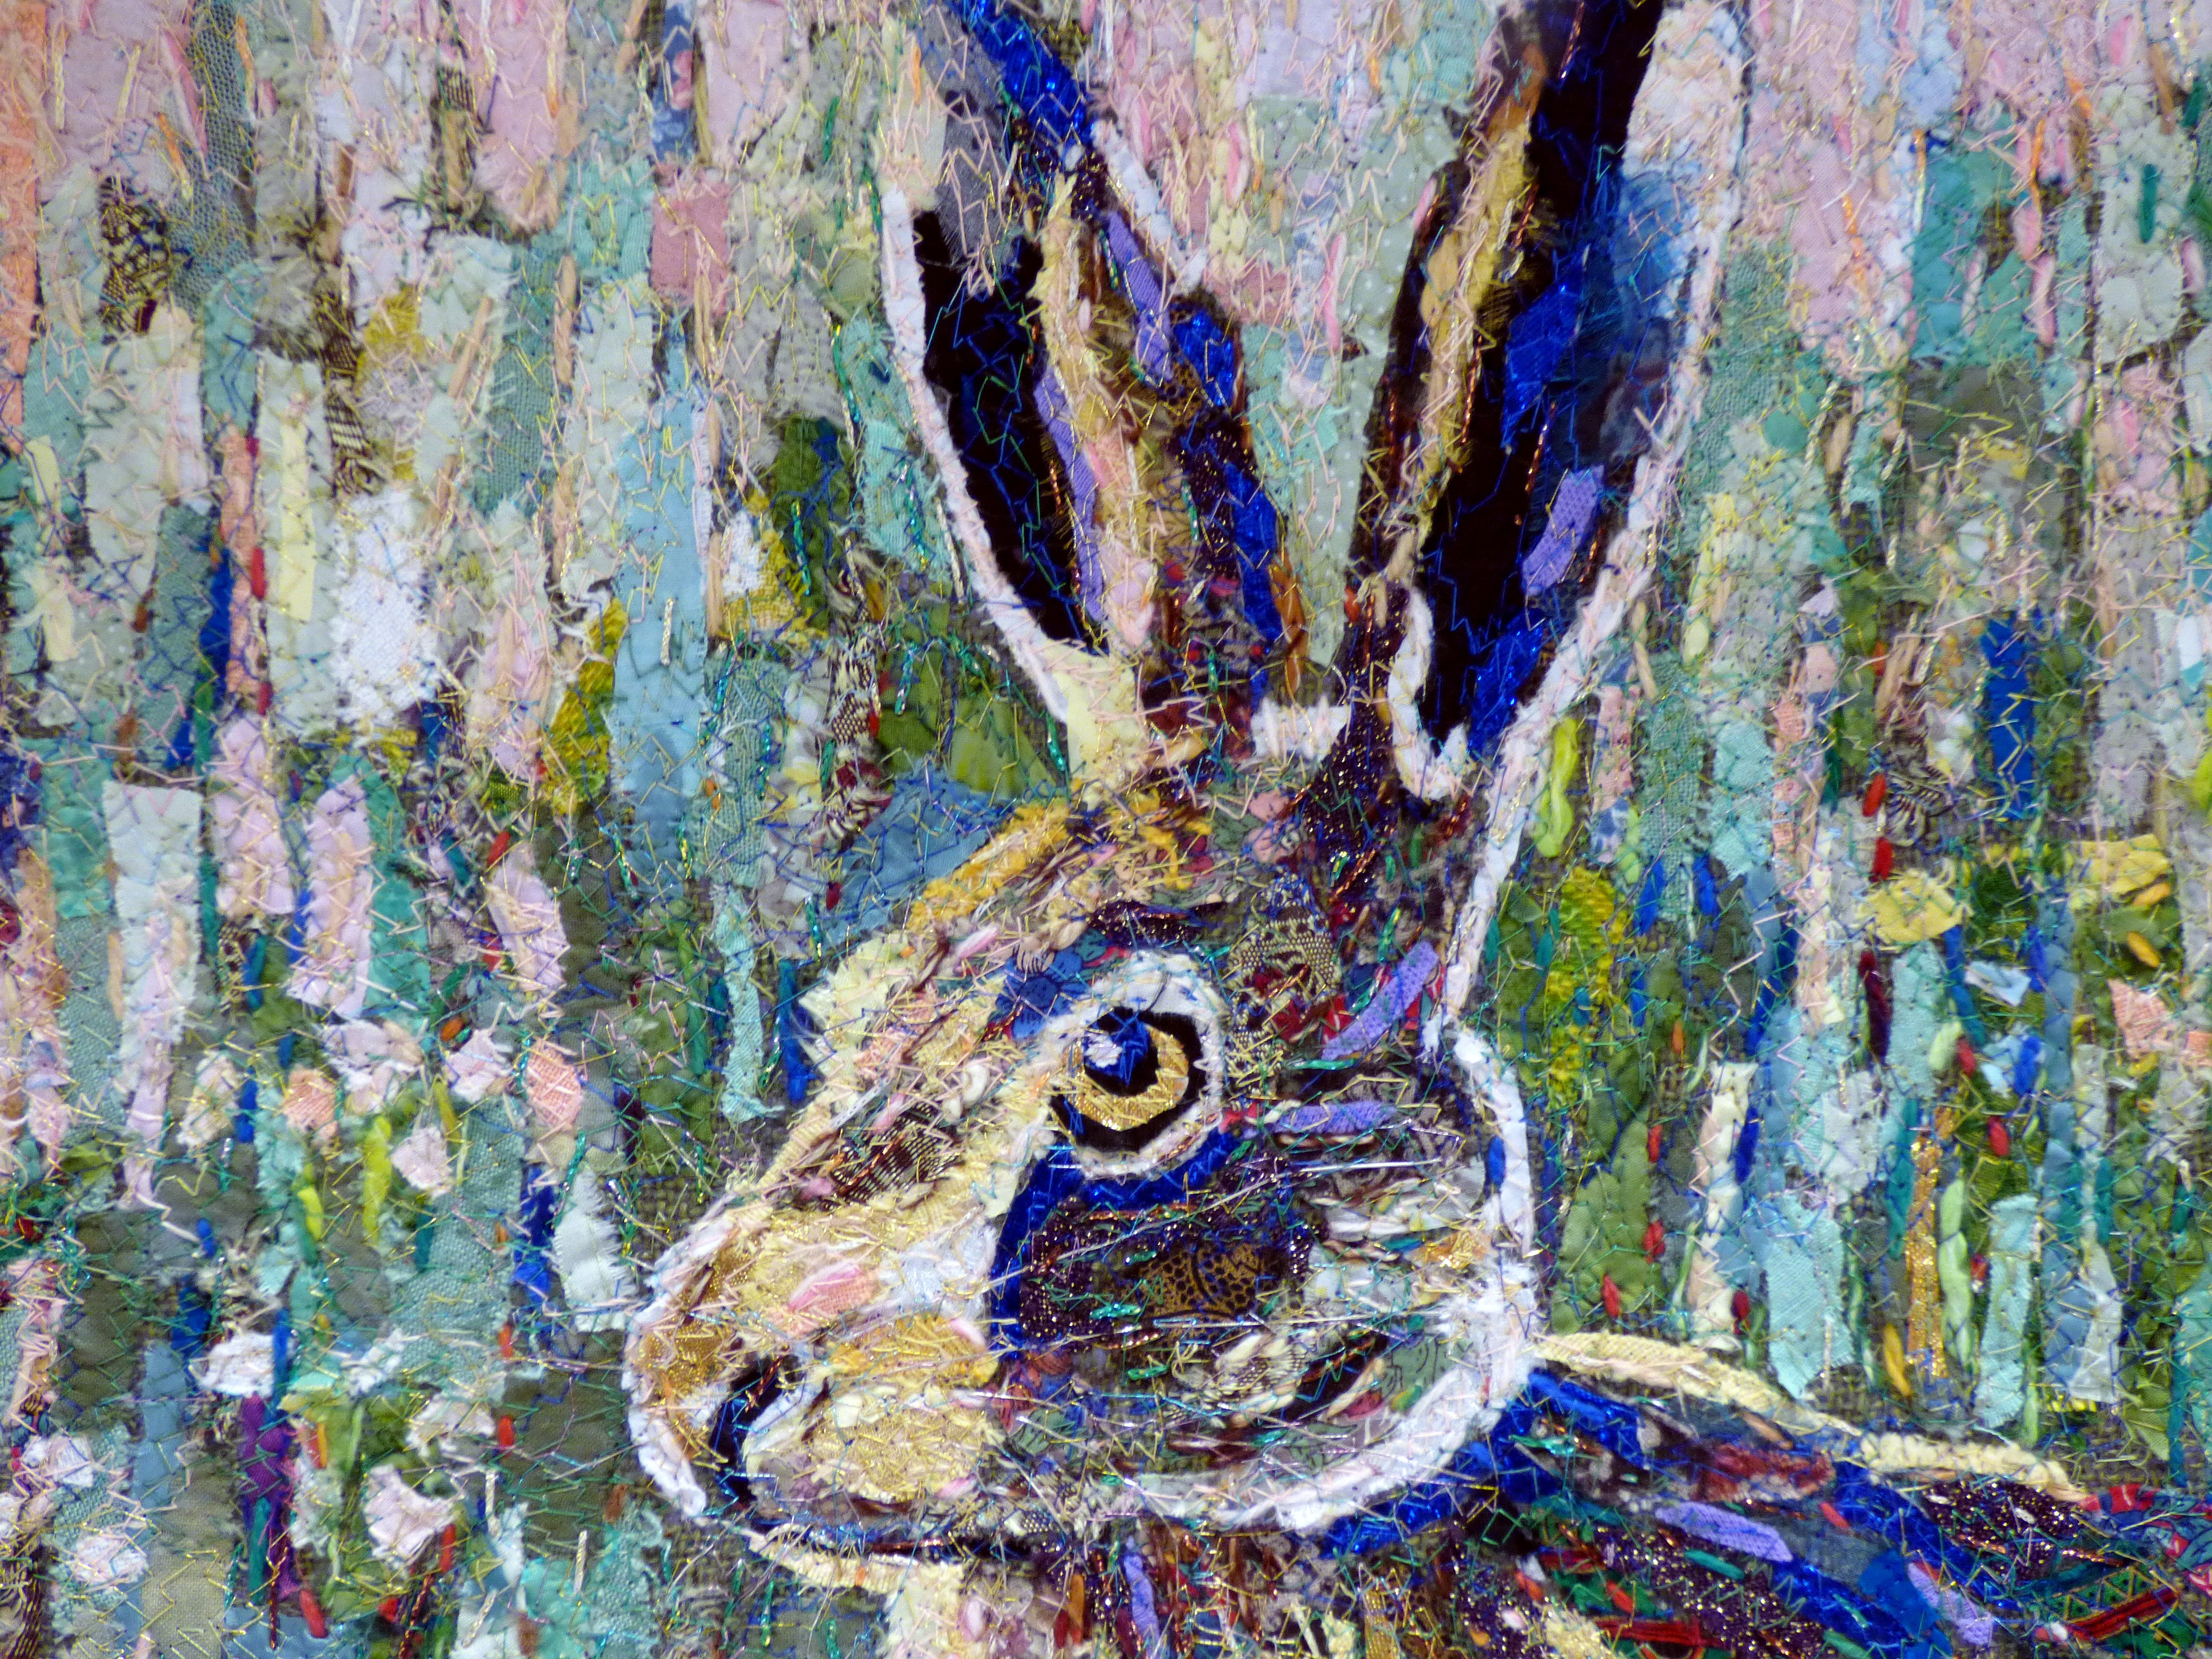 HARE embroidery by Richard Box